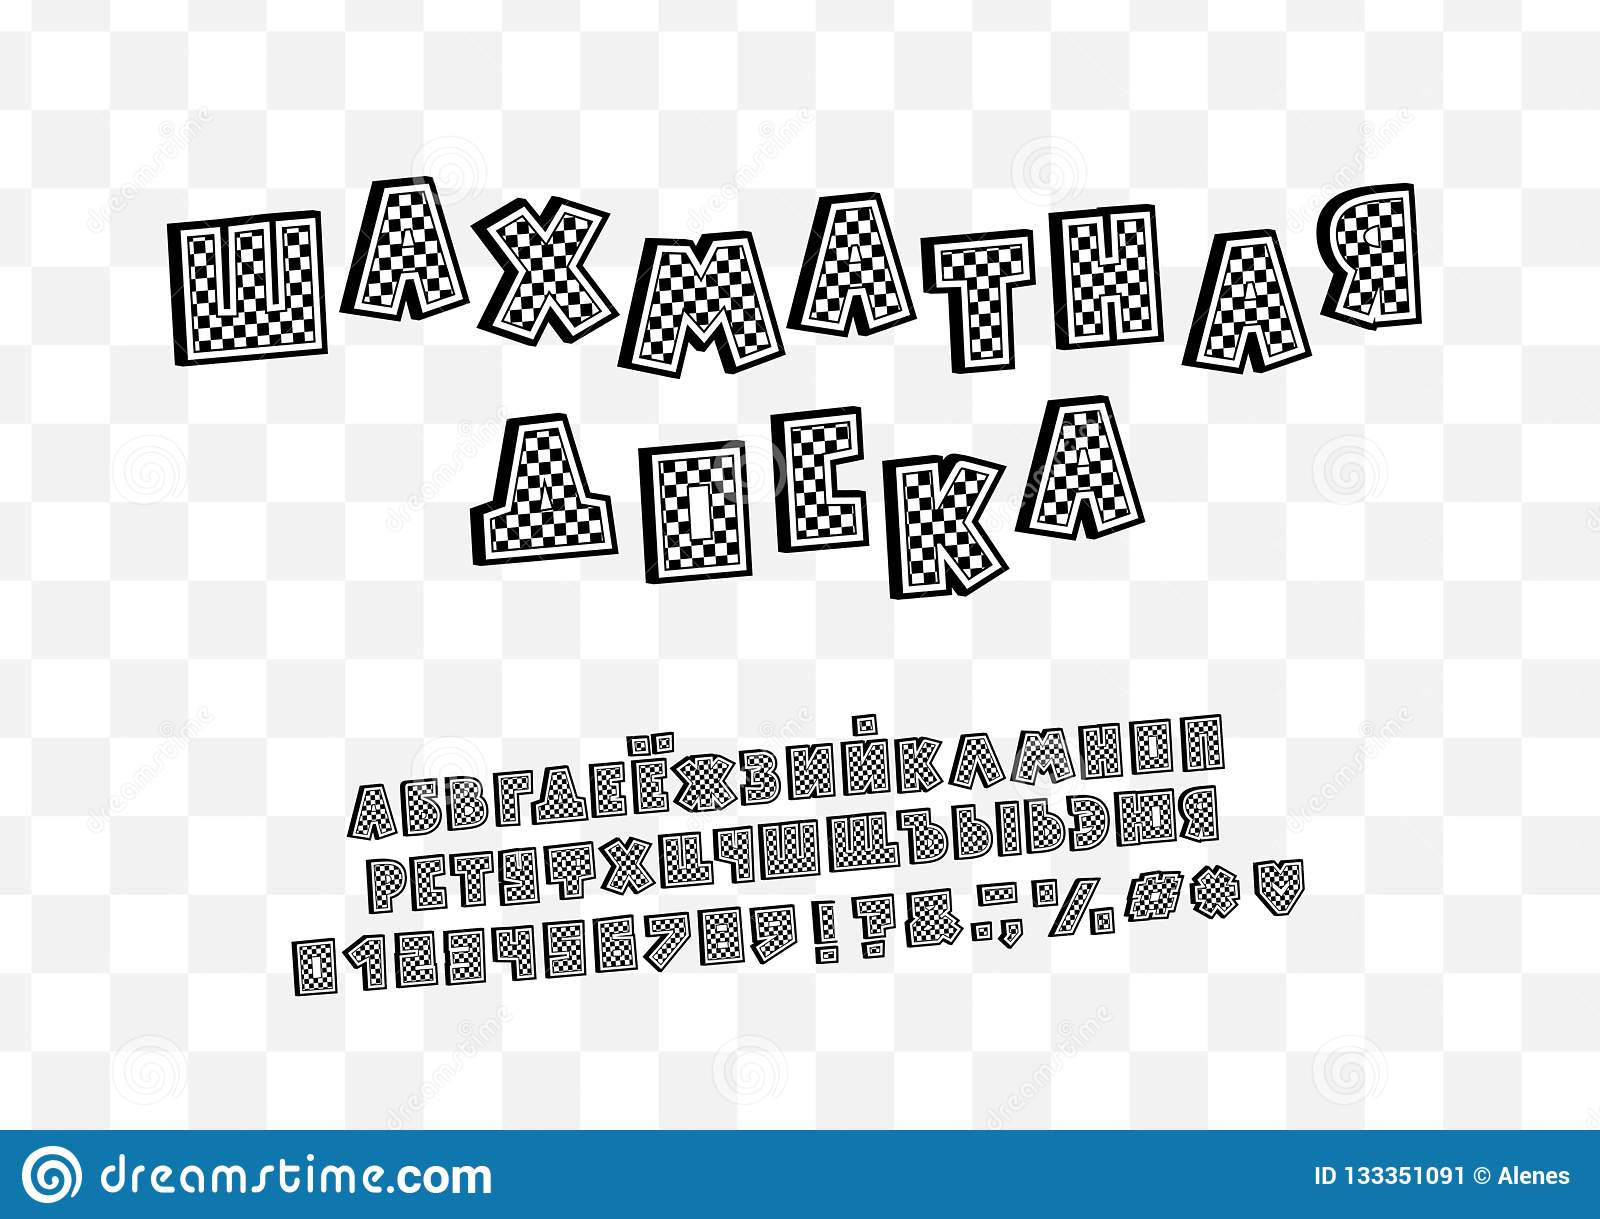 Alphabet Chessboard Design  Russian Letters, Numbers And